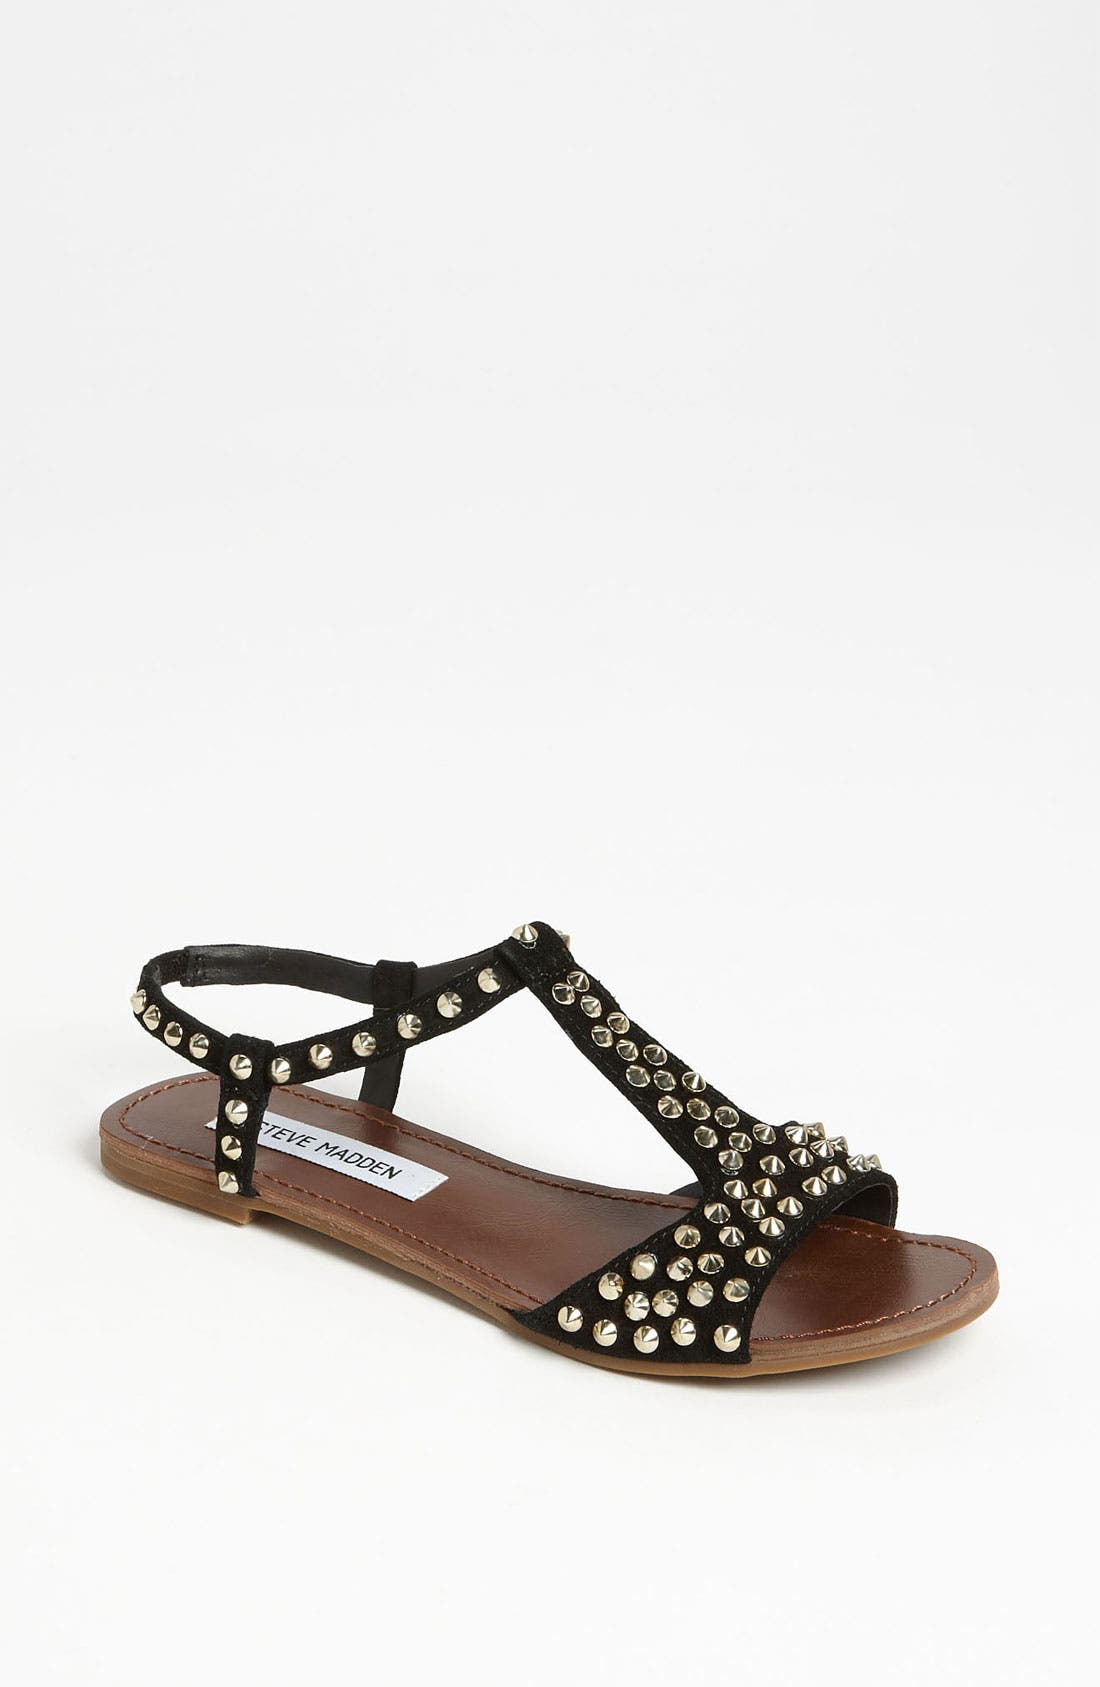 Alternate Image 1 Selected - Steve Madden 'Nickiee' Sandal